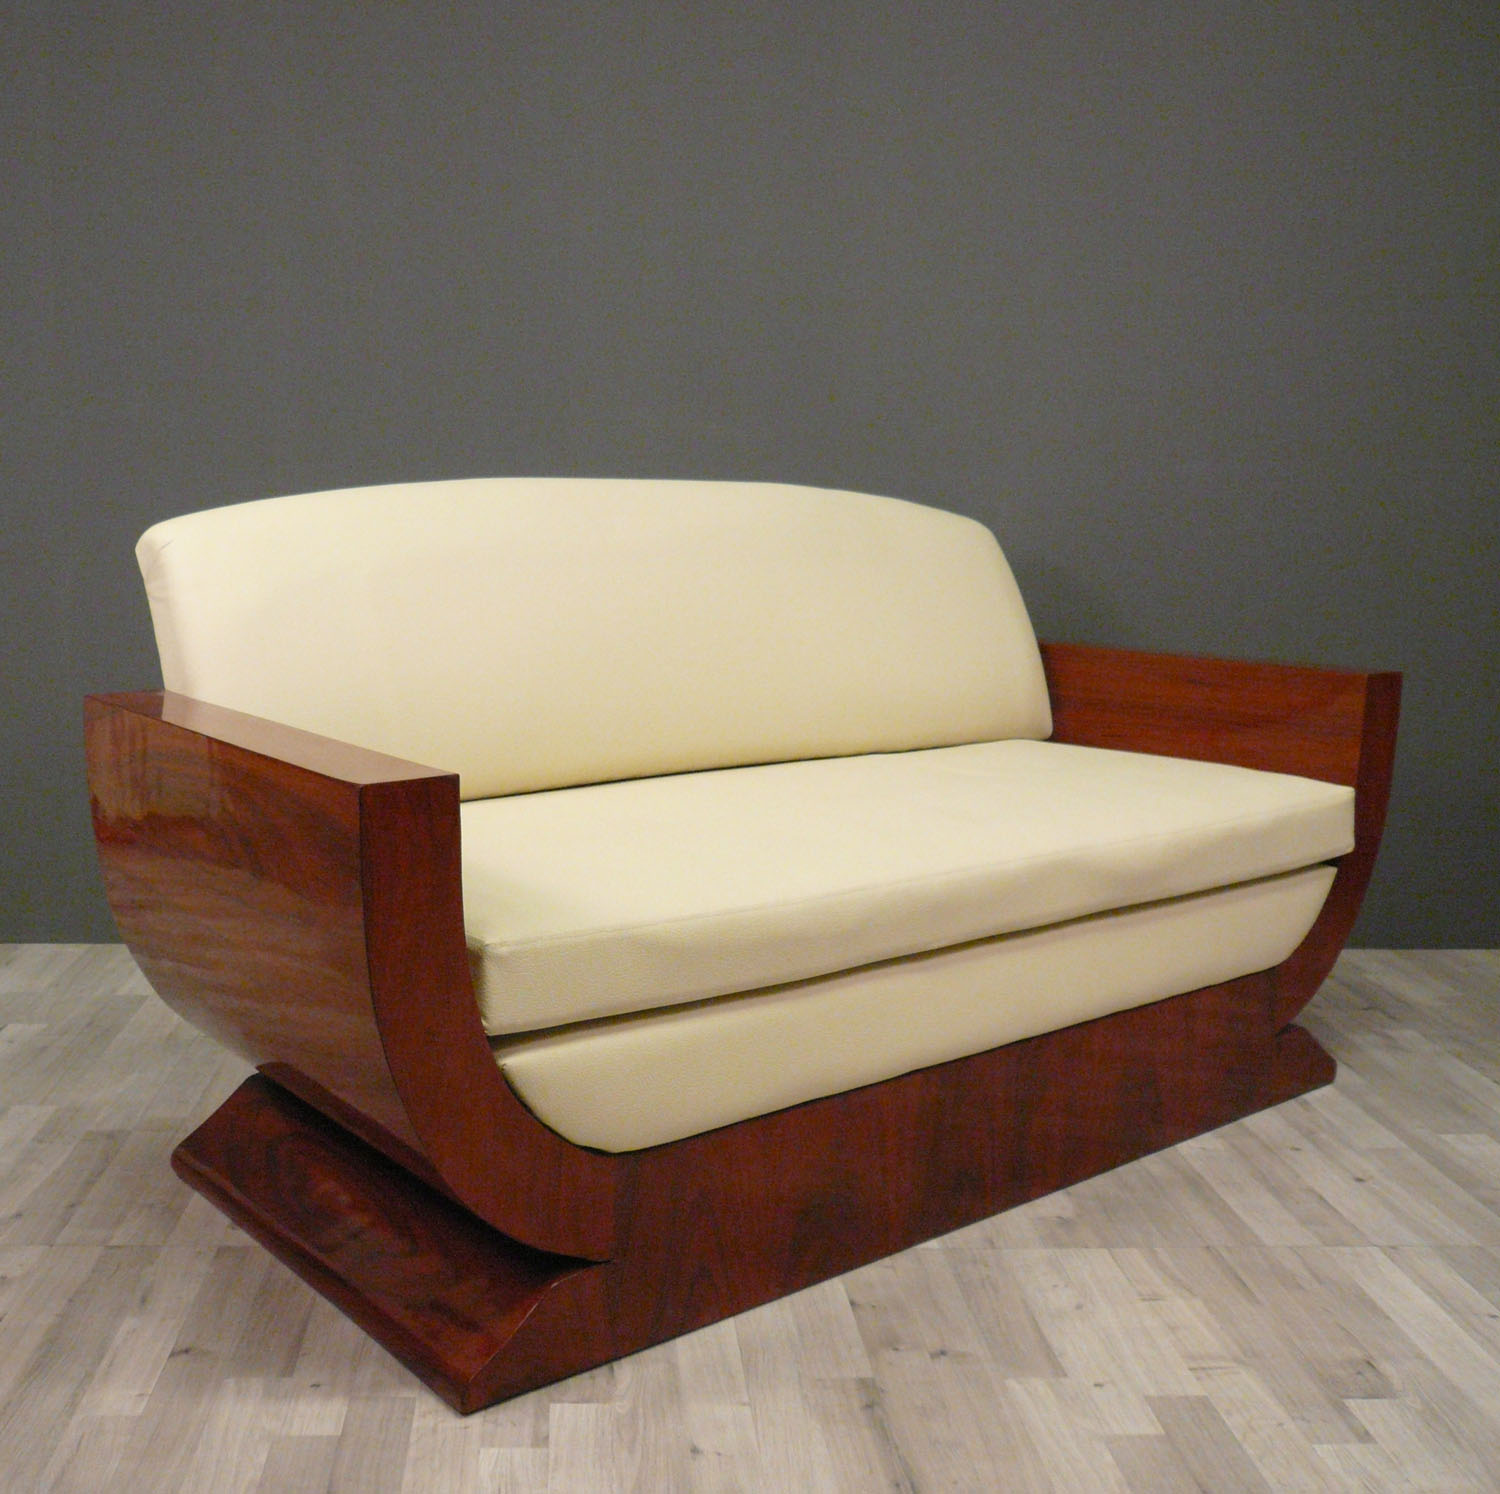 Art deco sofa art deco furniture - Vase deco pas cher ...